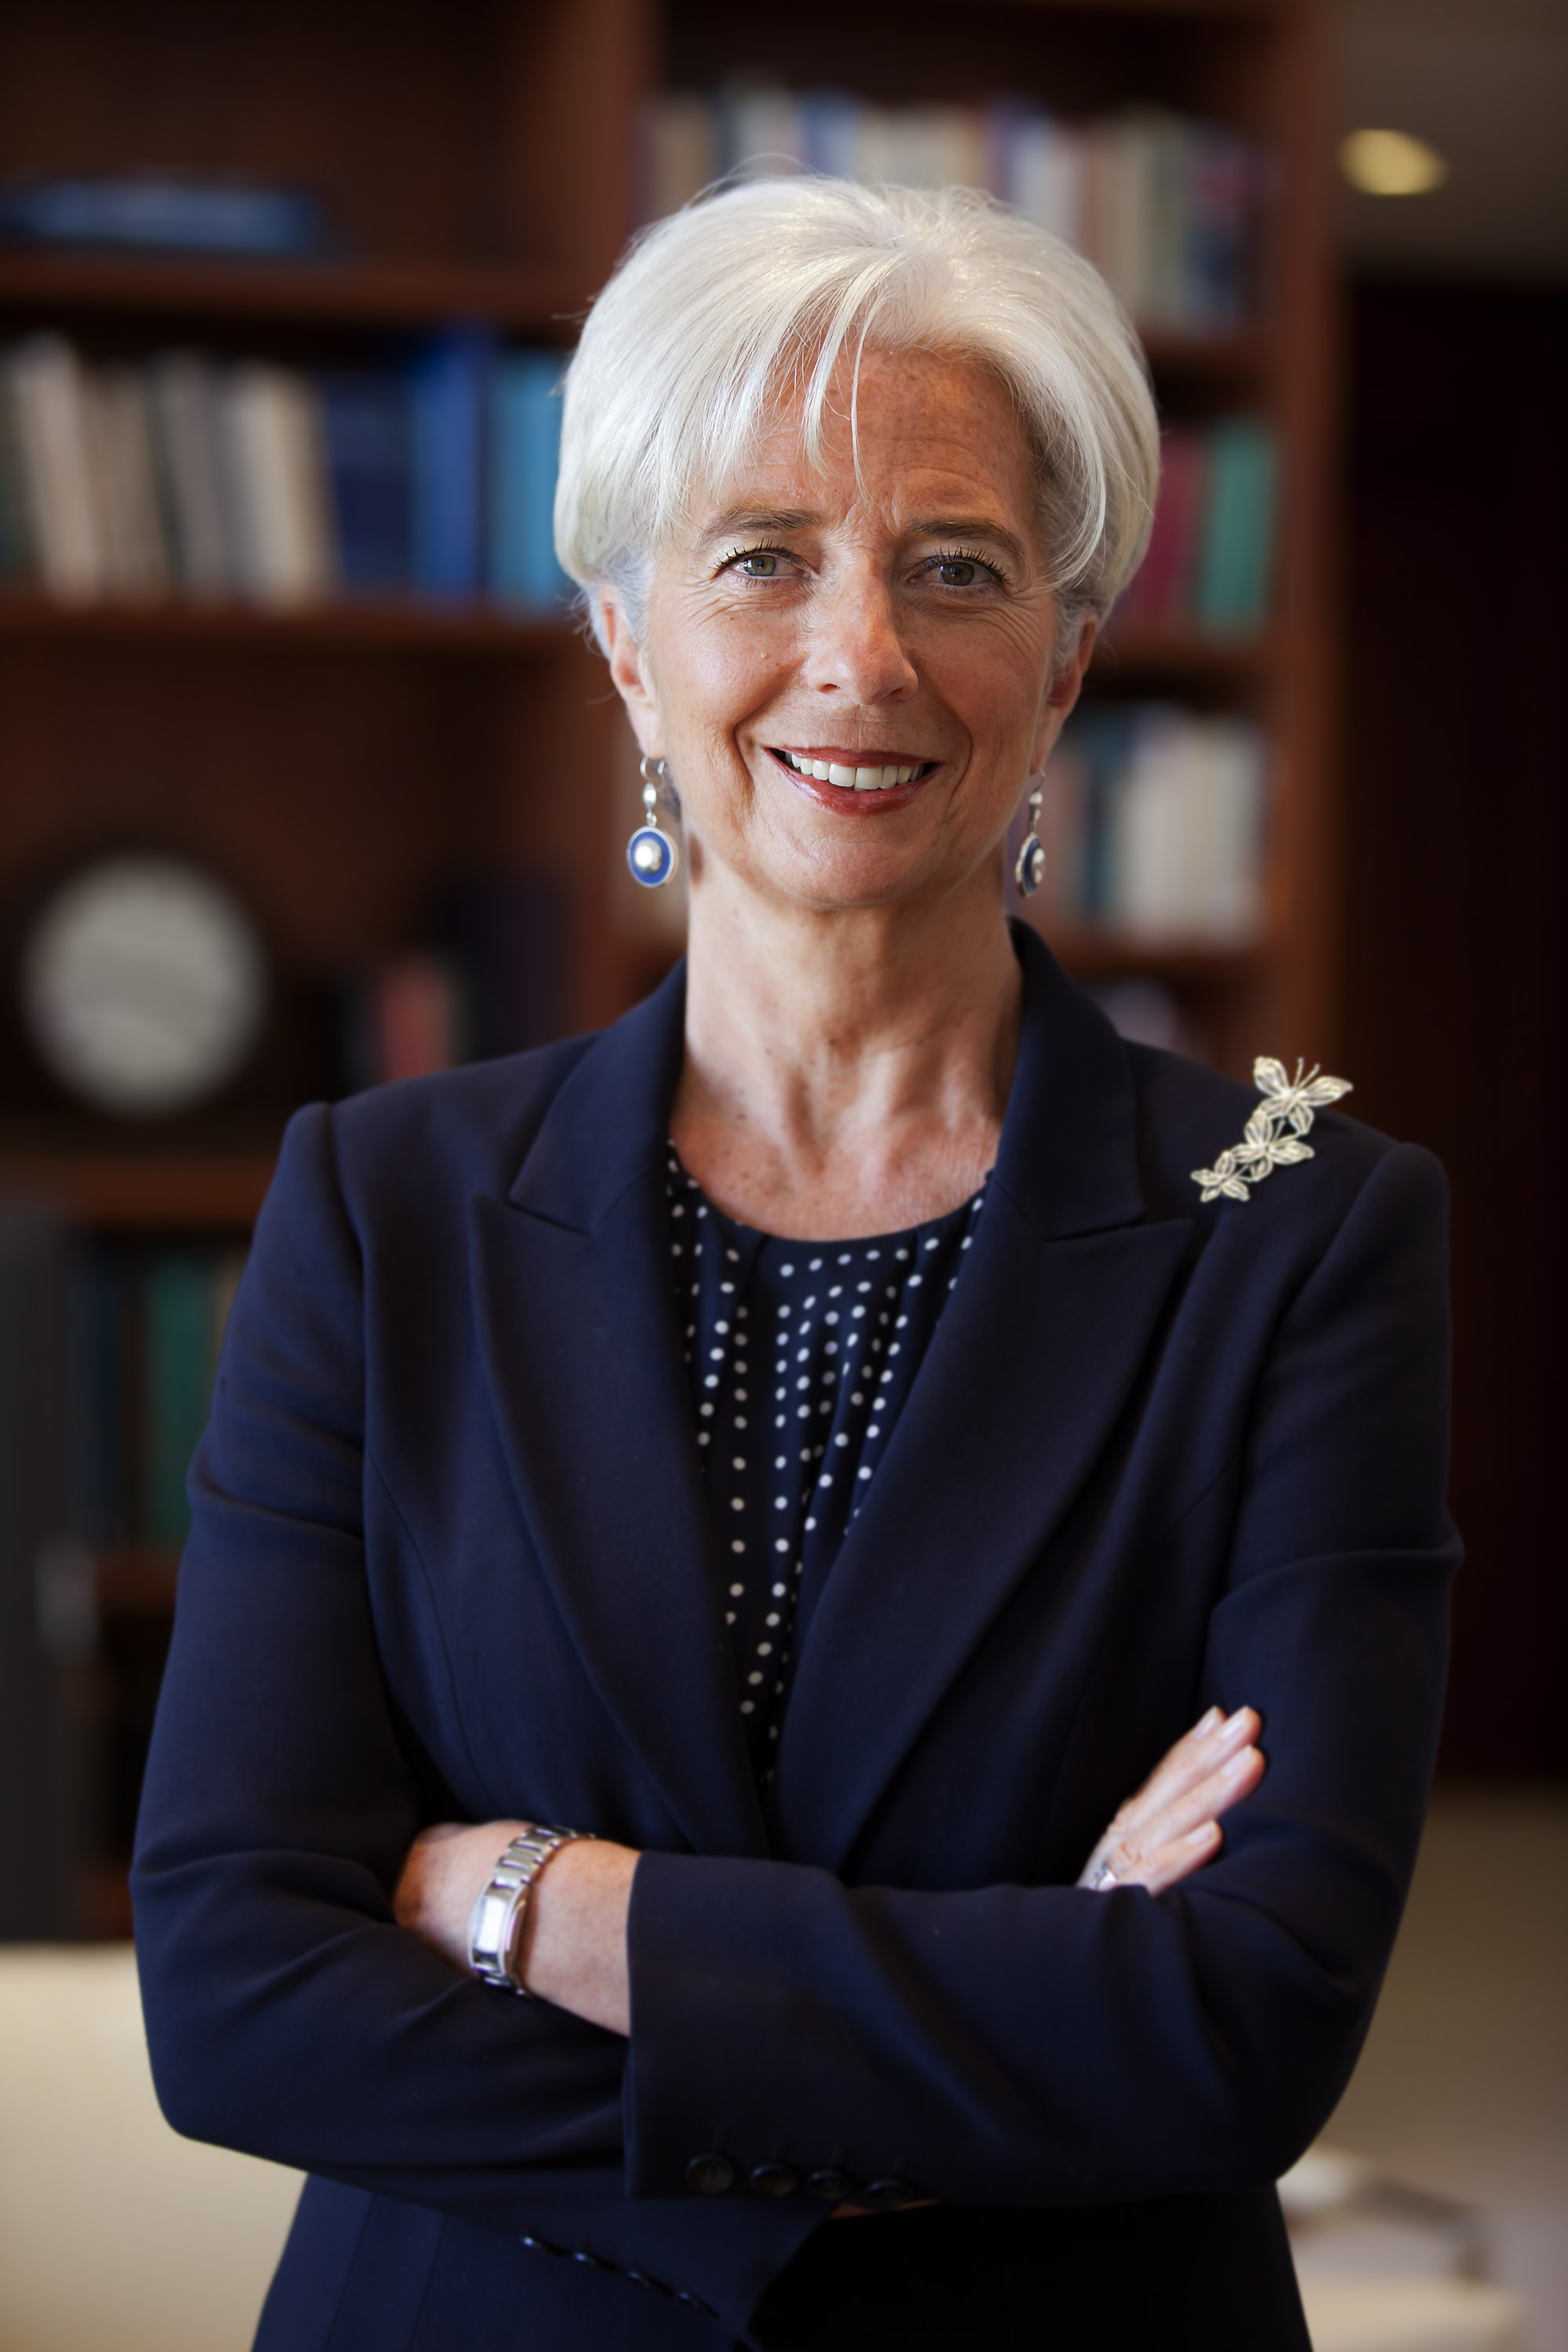 christine lagarde Christine lagarde is a french lawyer, politician, and managing director of the international monetary fund since 2011 ranked as the 5th most powerful woman in the world by forbes magazine, lagarde has had her share of controversy and the spotlight here is a listing to some of the most notable.